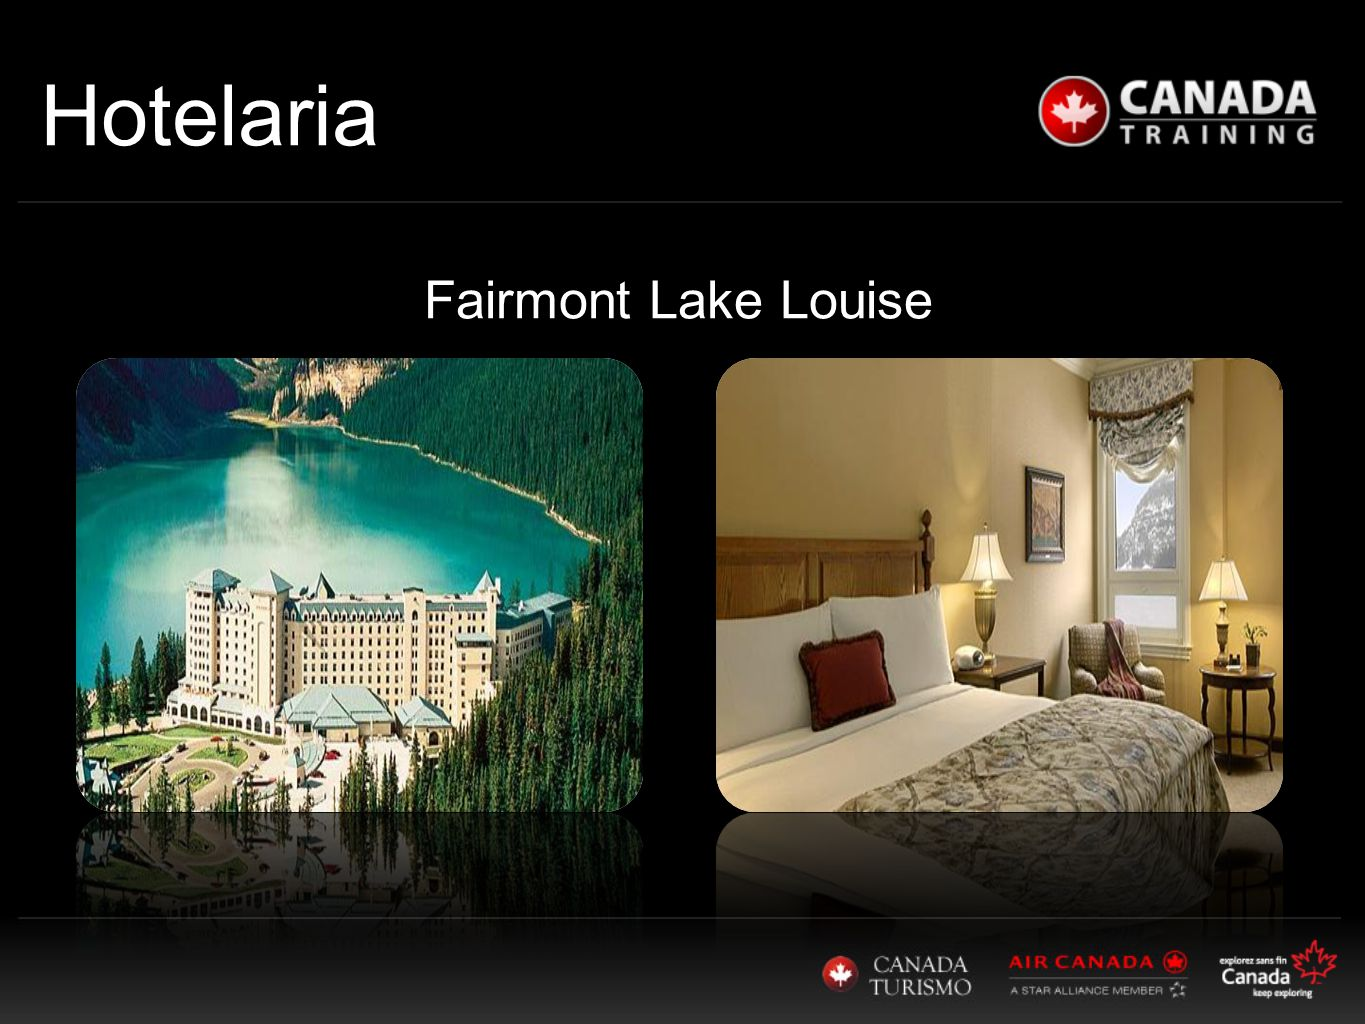 Hotelaria Fairmont Lake Louise